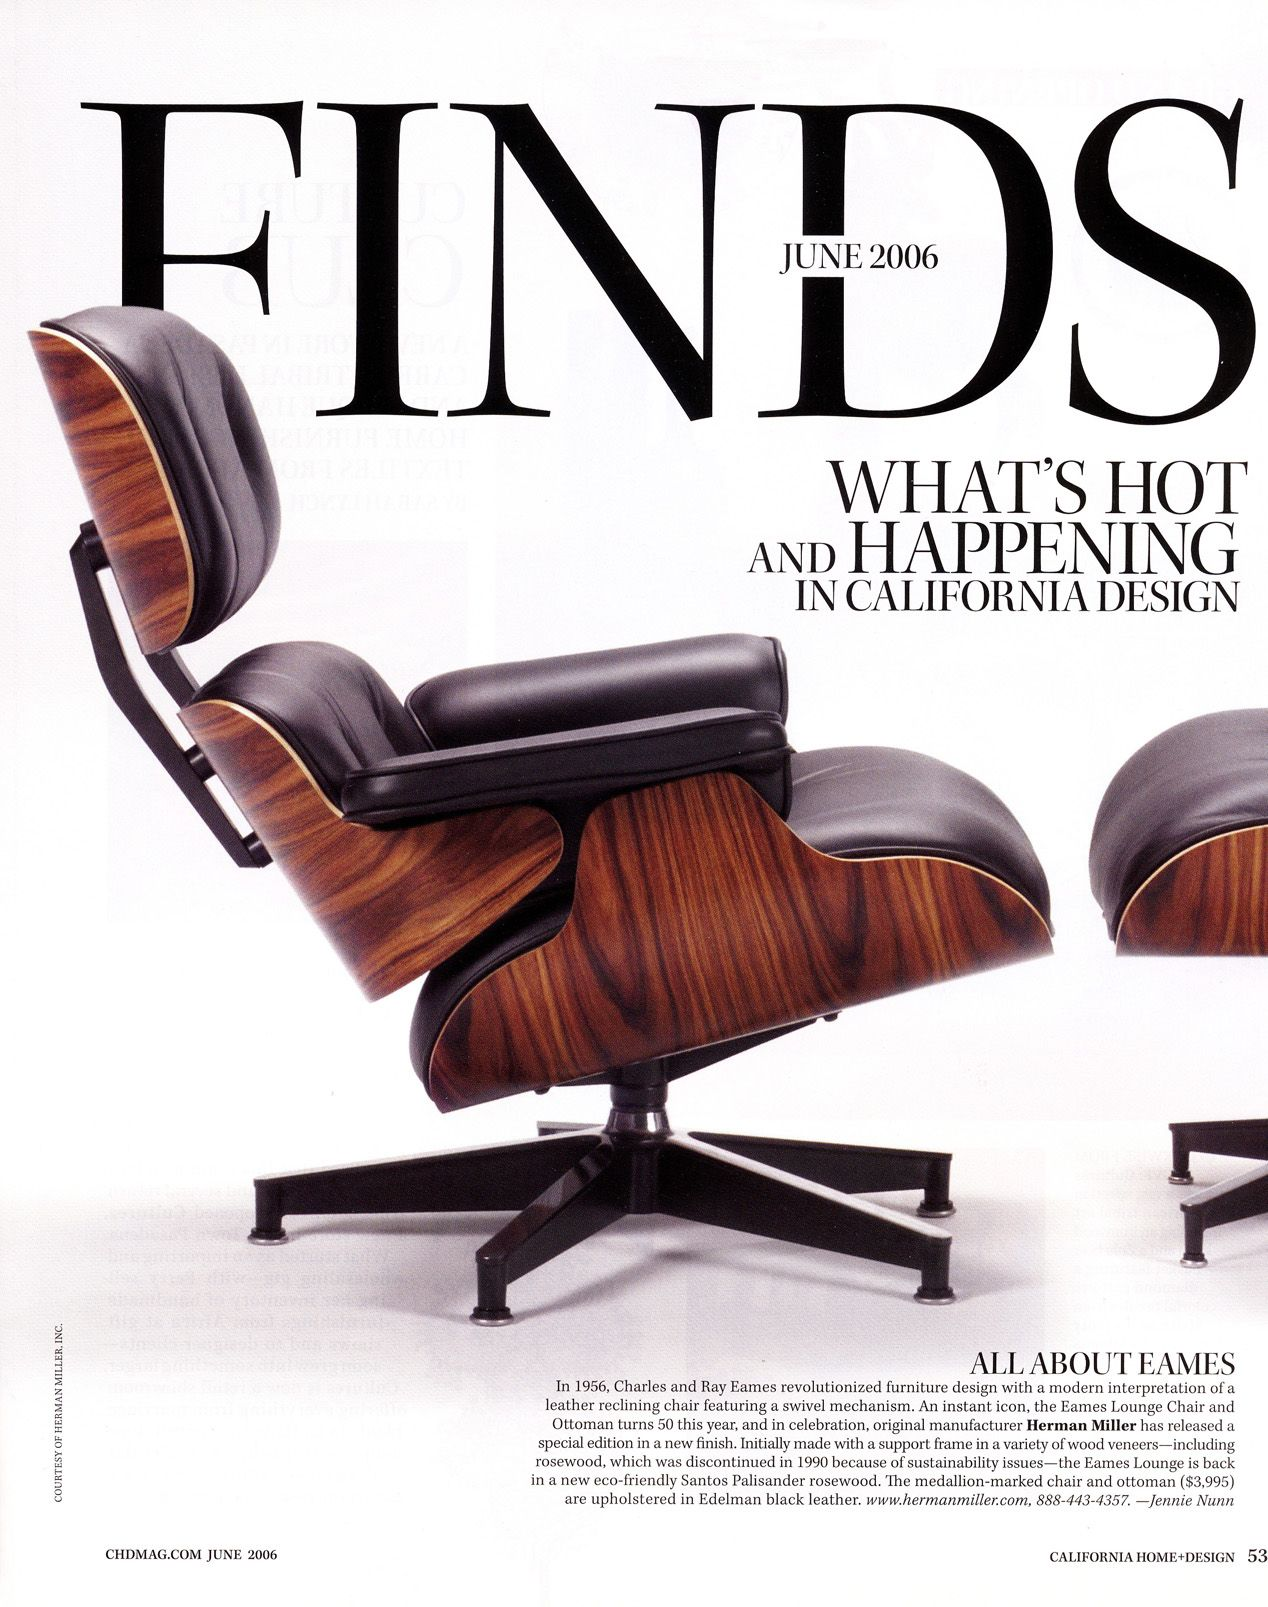 Original eames chair -  An Instant Icon The Eames Lounge Chair And Ottoman Turns 50 This Year